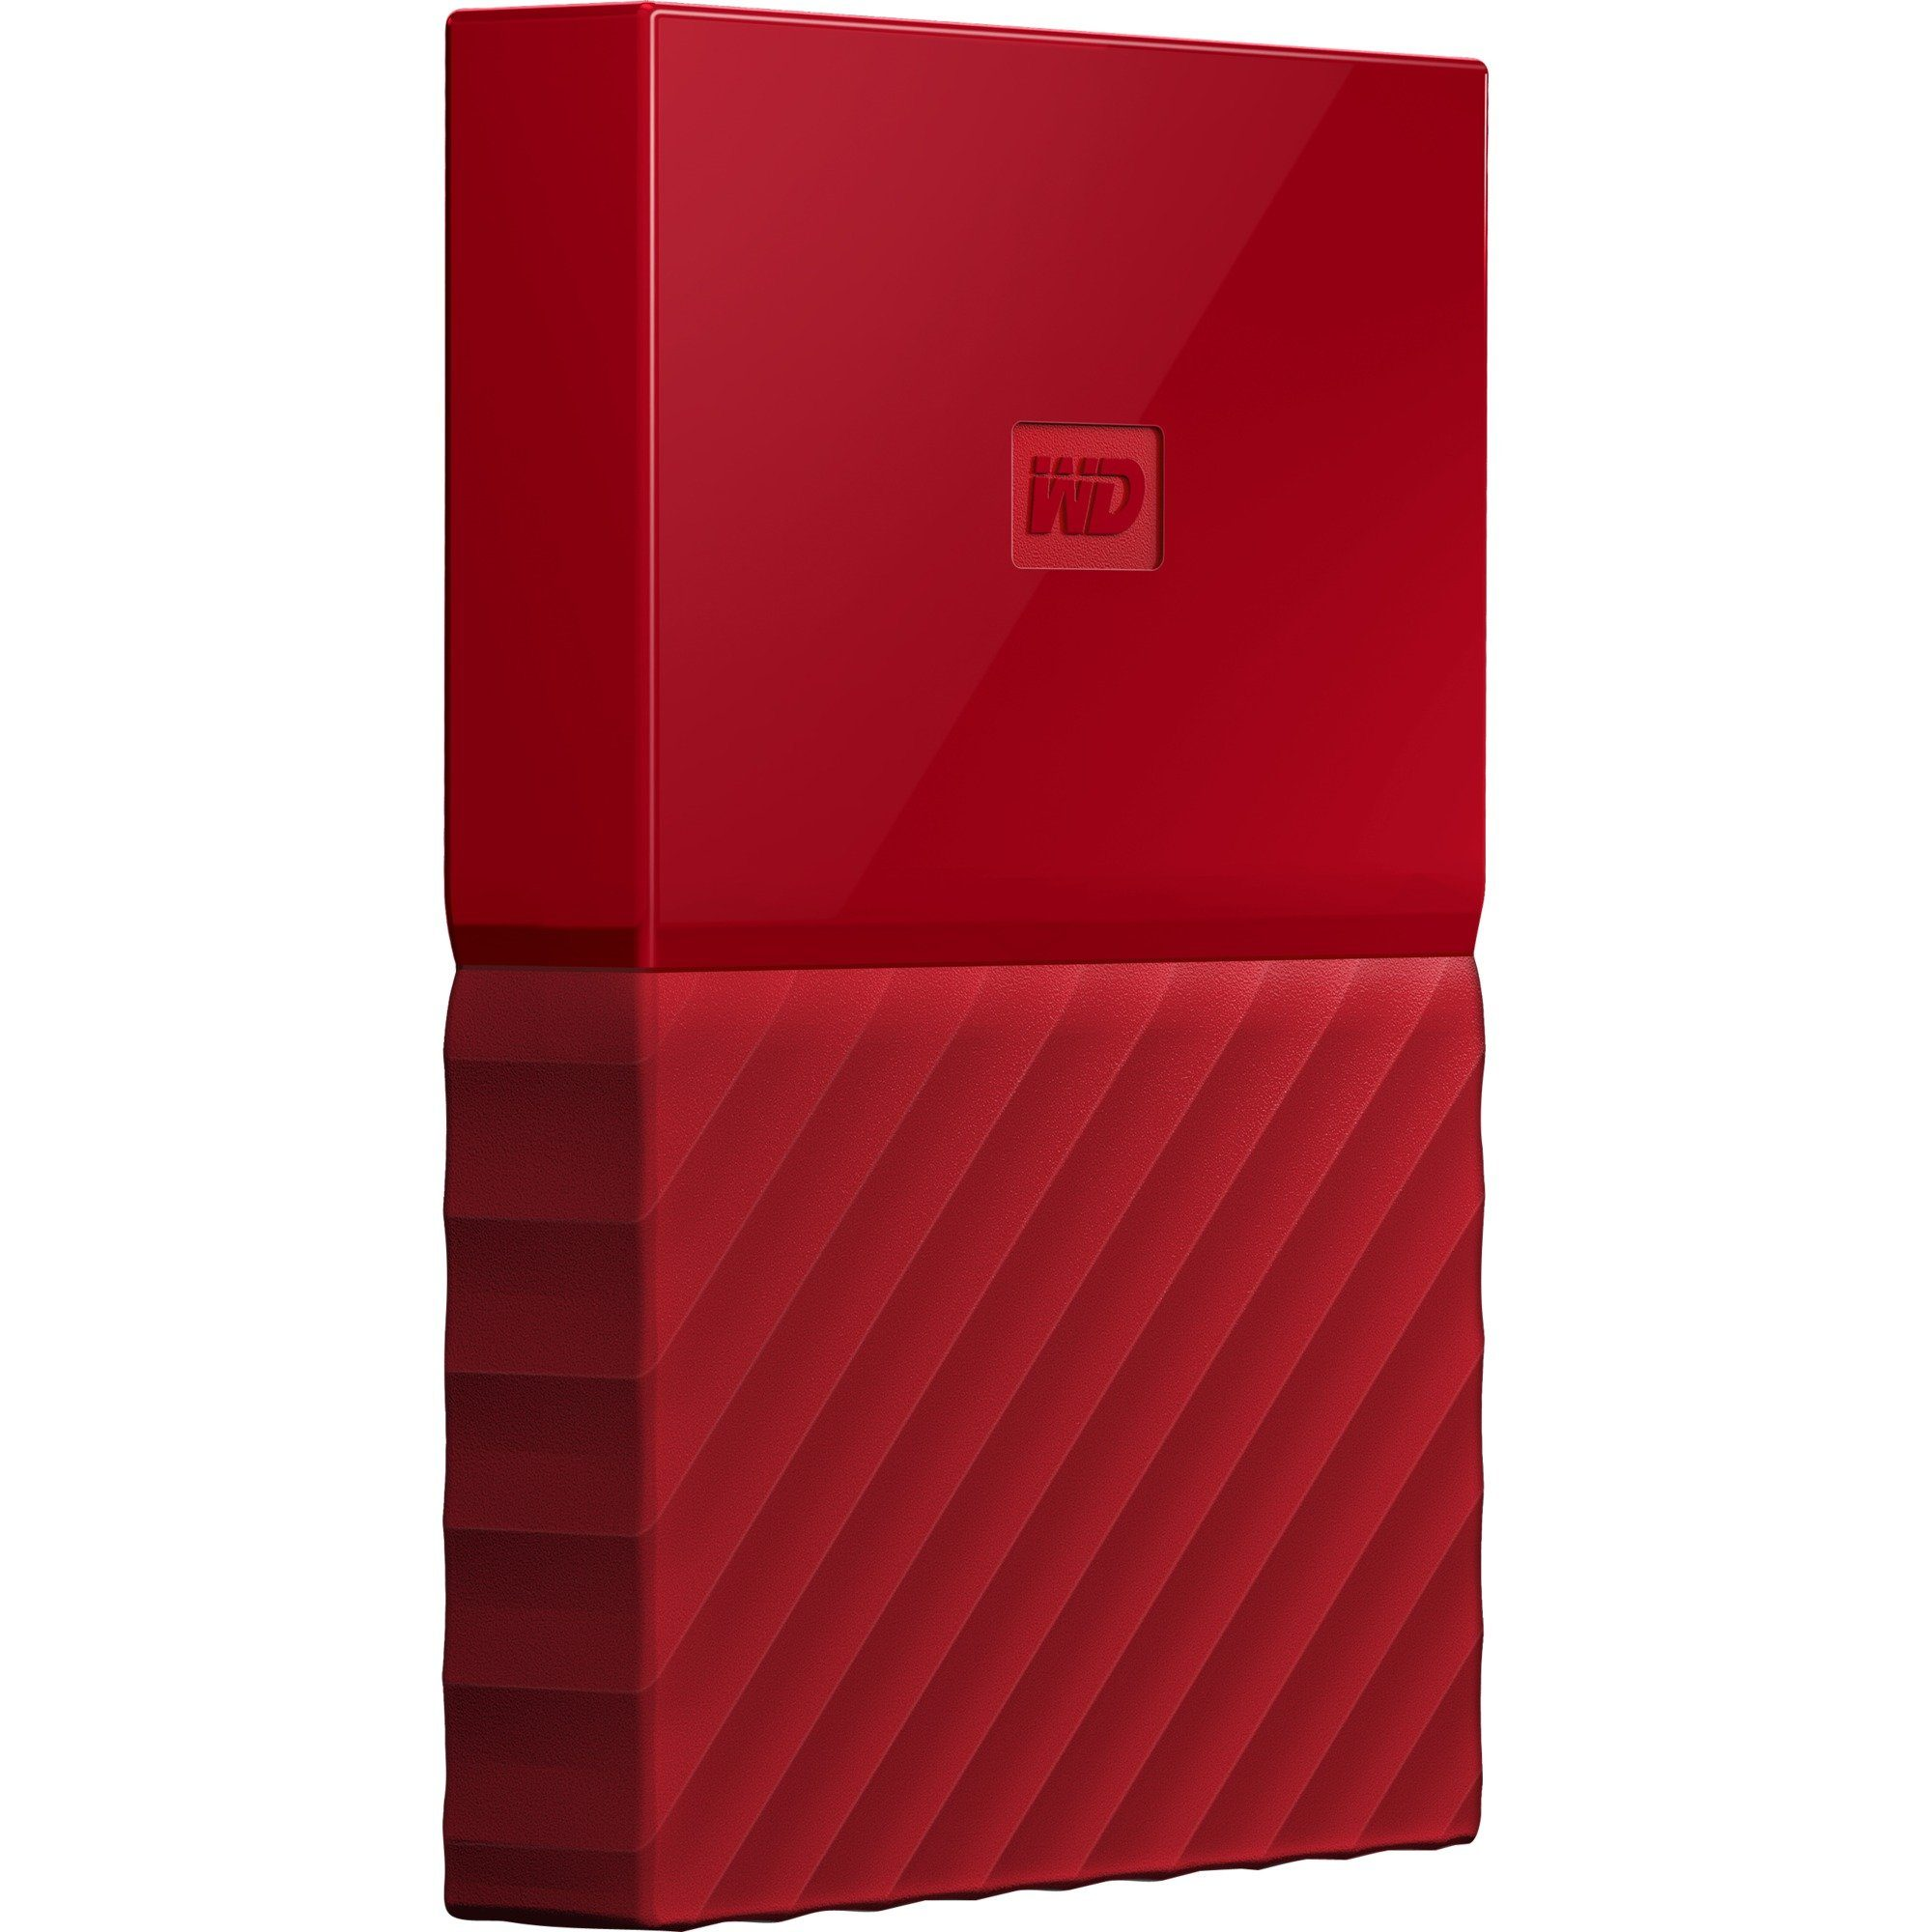 Western Digital Festplatte »My Passport 3 TB«